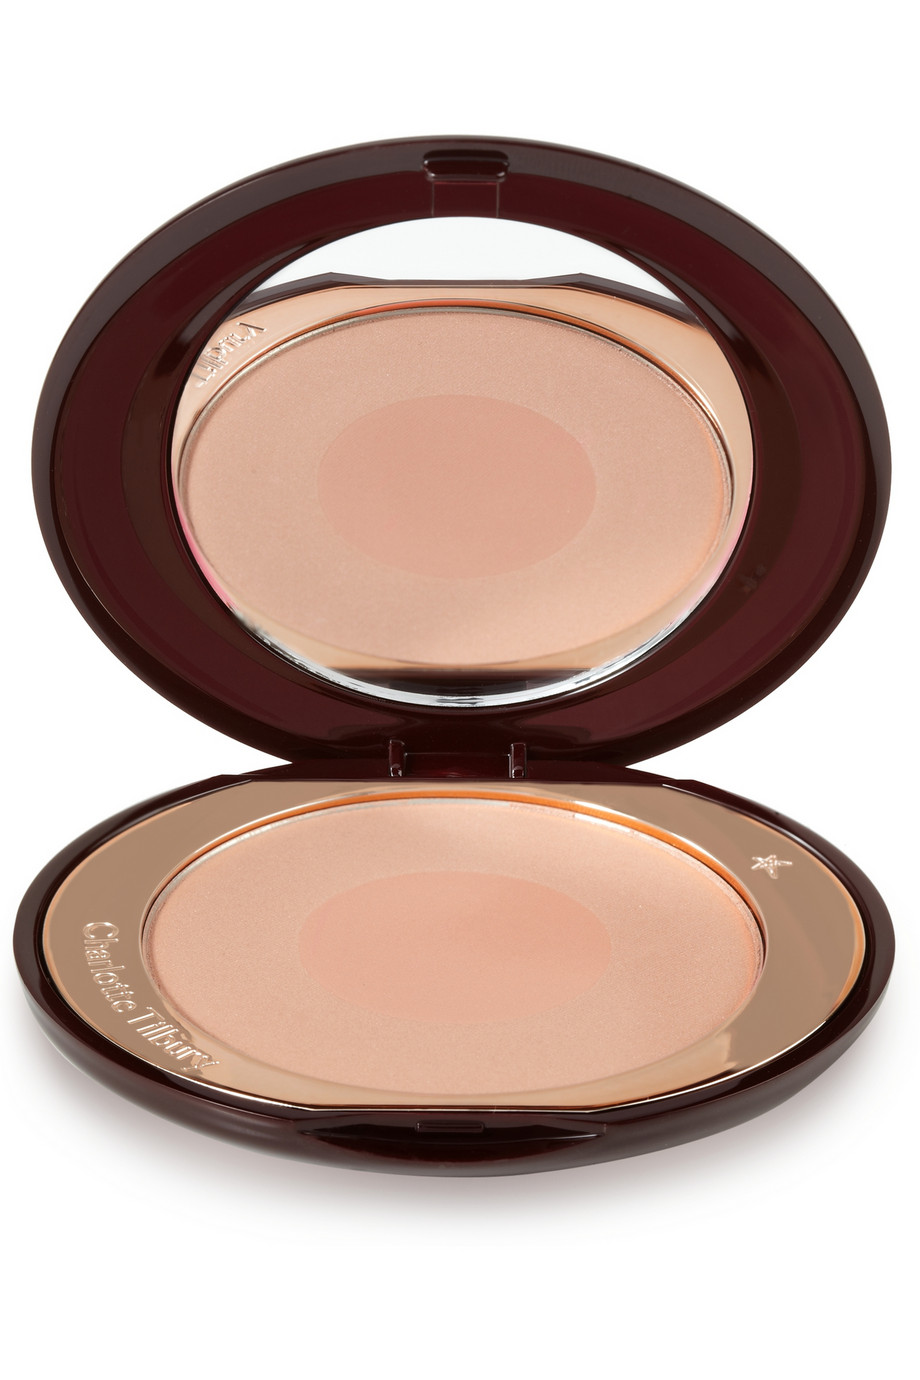 CHARLOTTE TILBURY Cheek To Chic Swish & Pop Blusher - First Love buy HERE